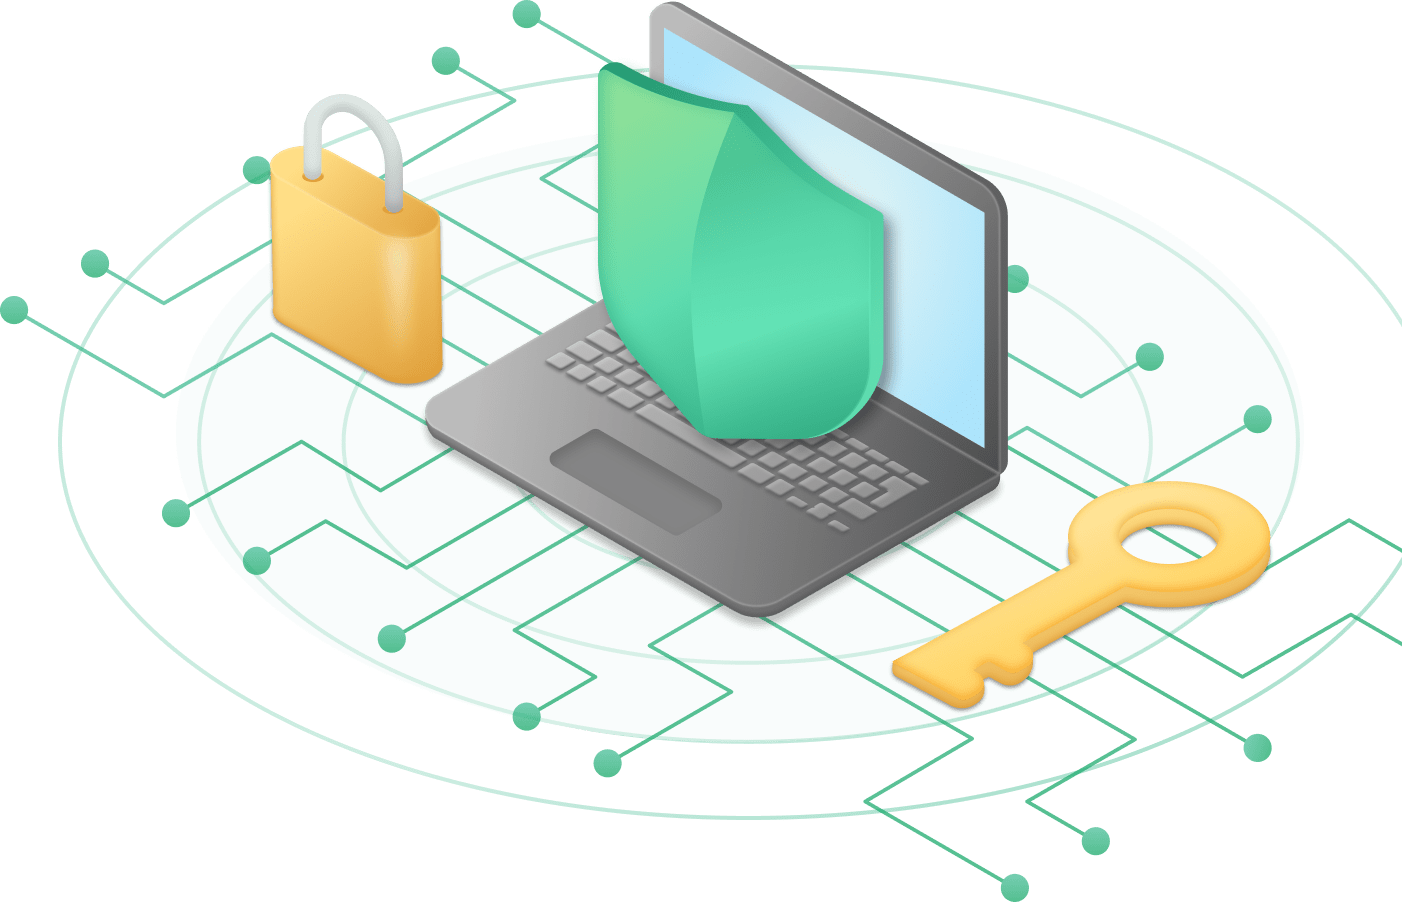 Header image-Shows an illustration of a laptop with a shield over, on the sides have a lock and a key